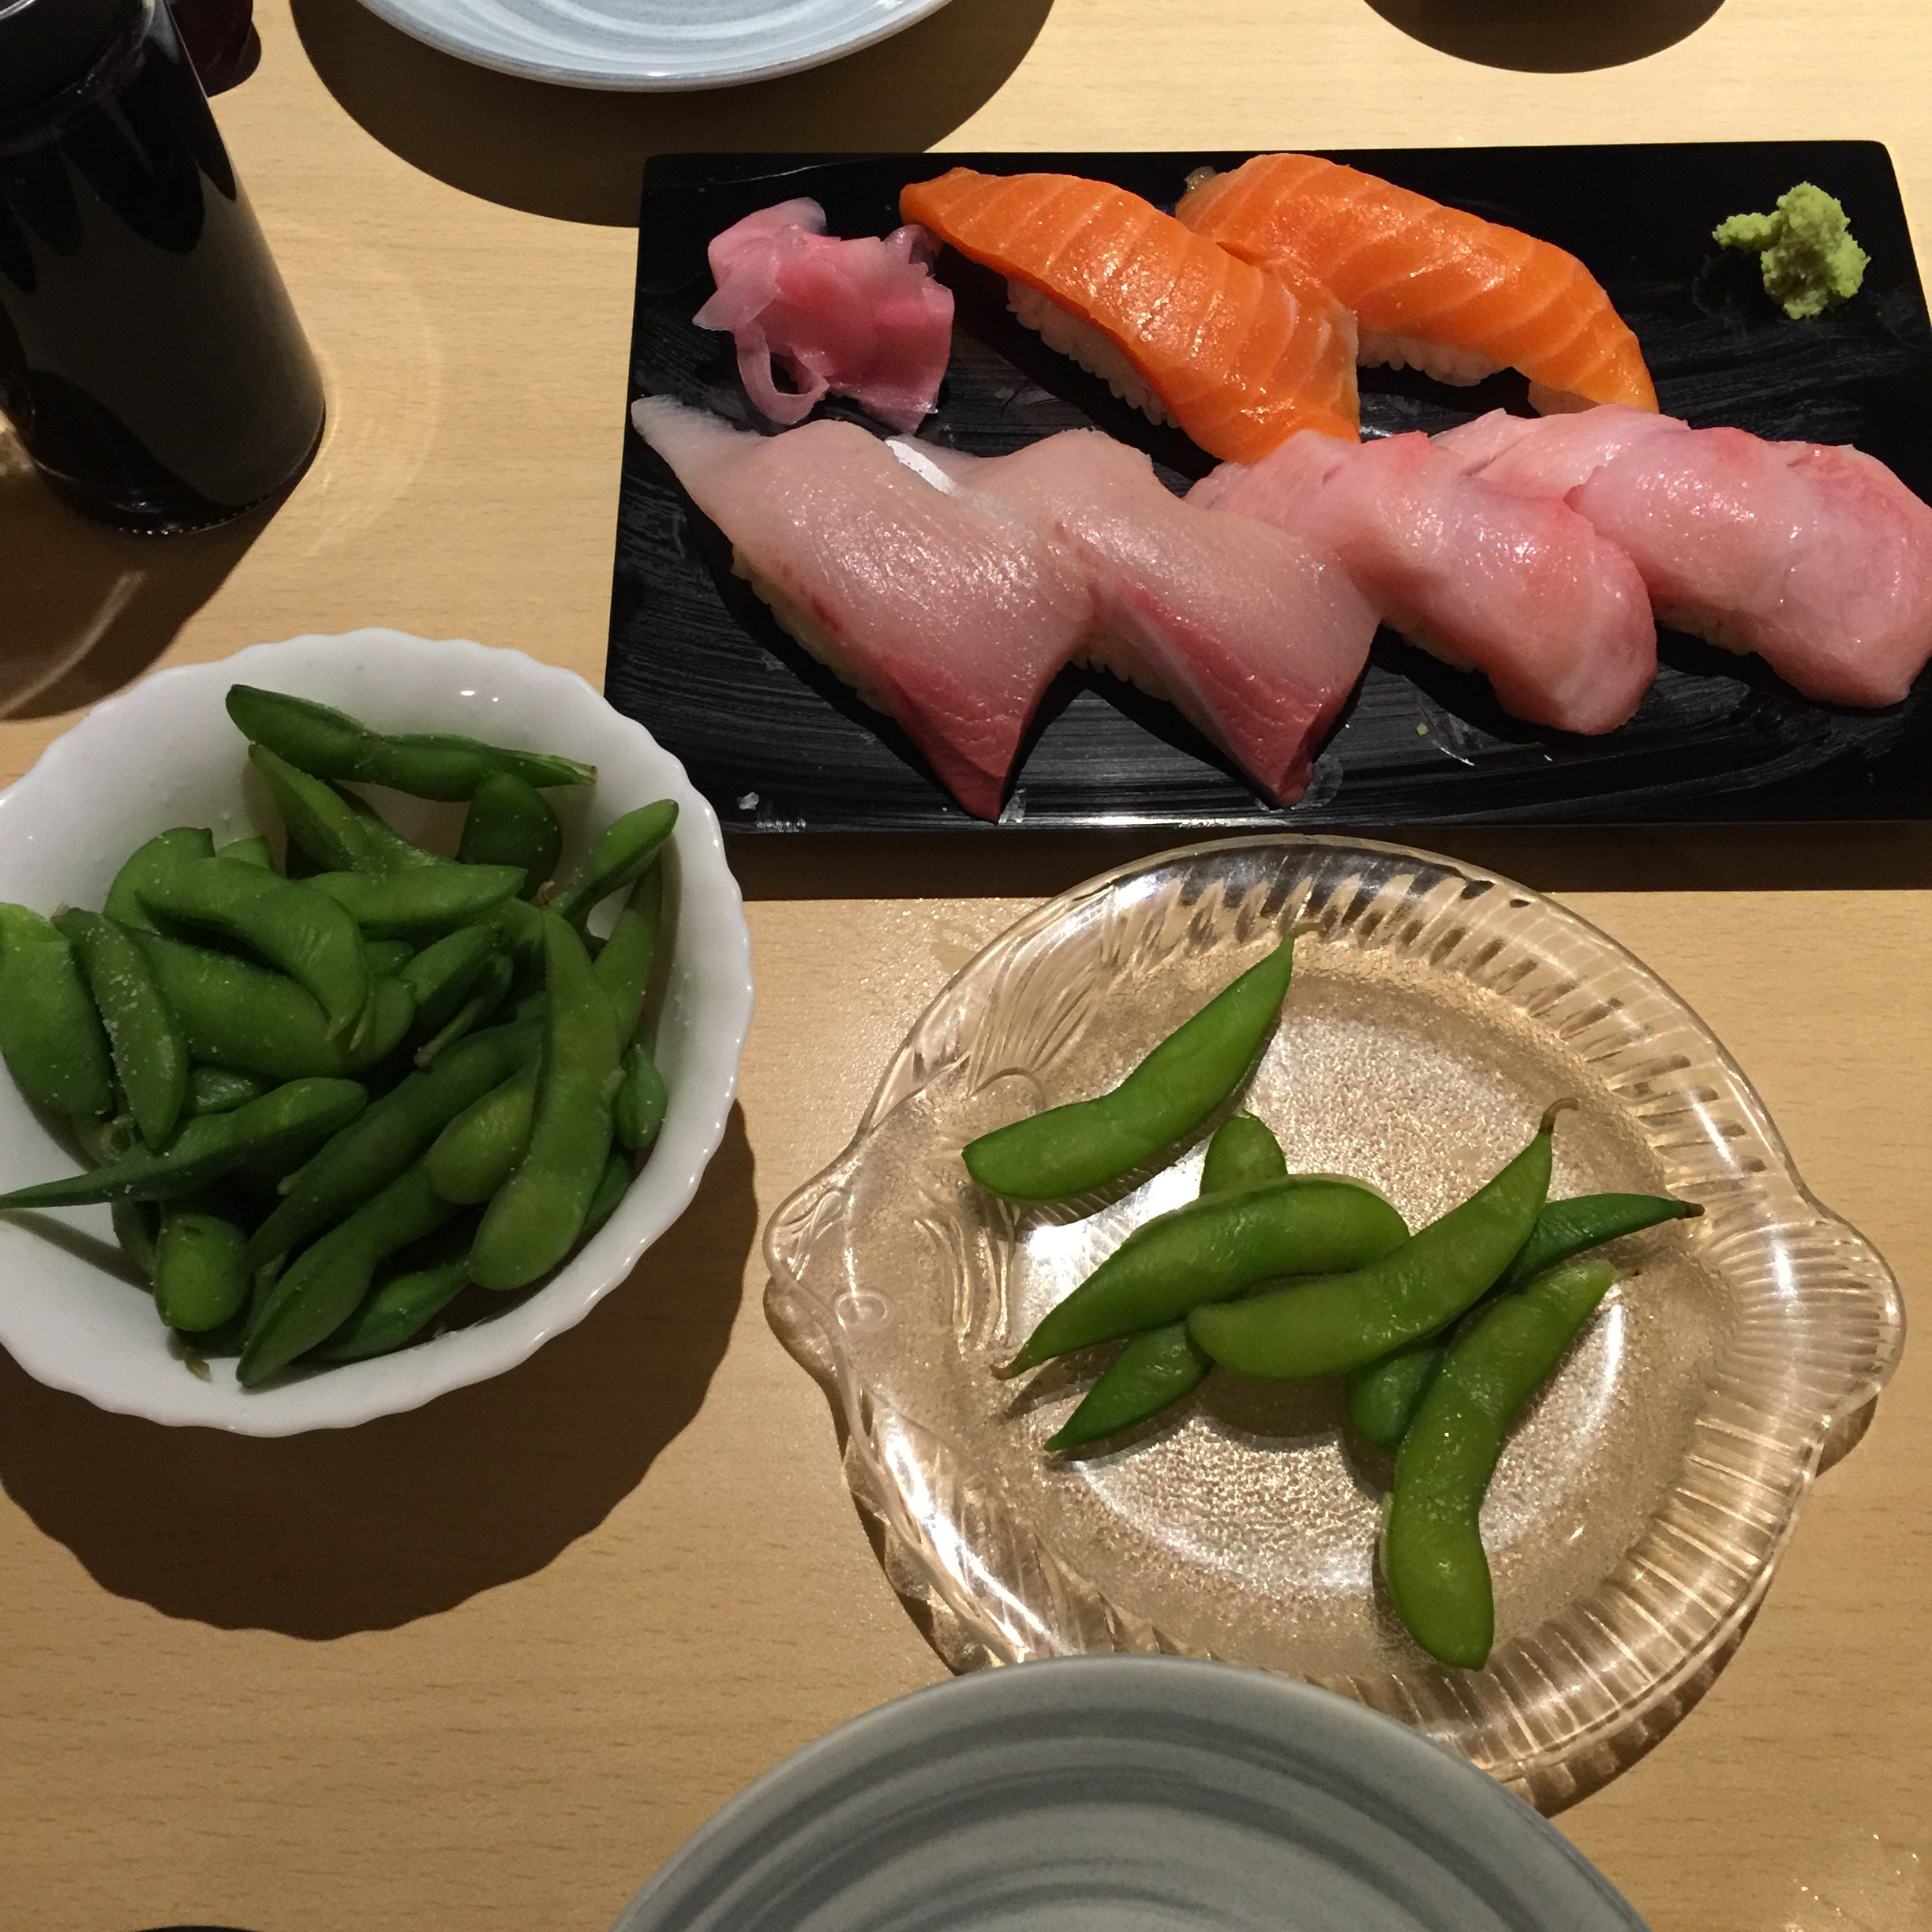 A favorite of mine...steamed soybeans and sushi